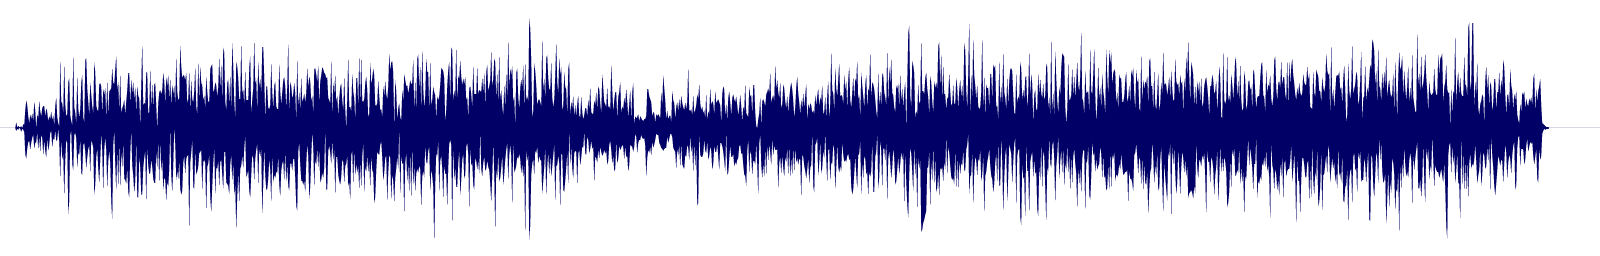 waveform of track #143596